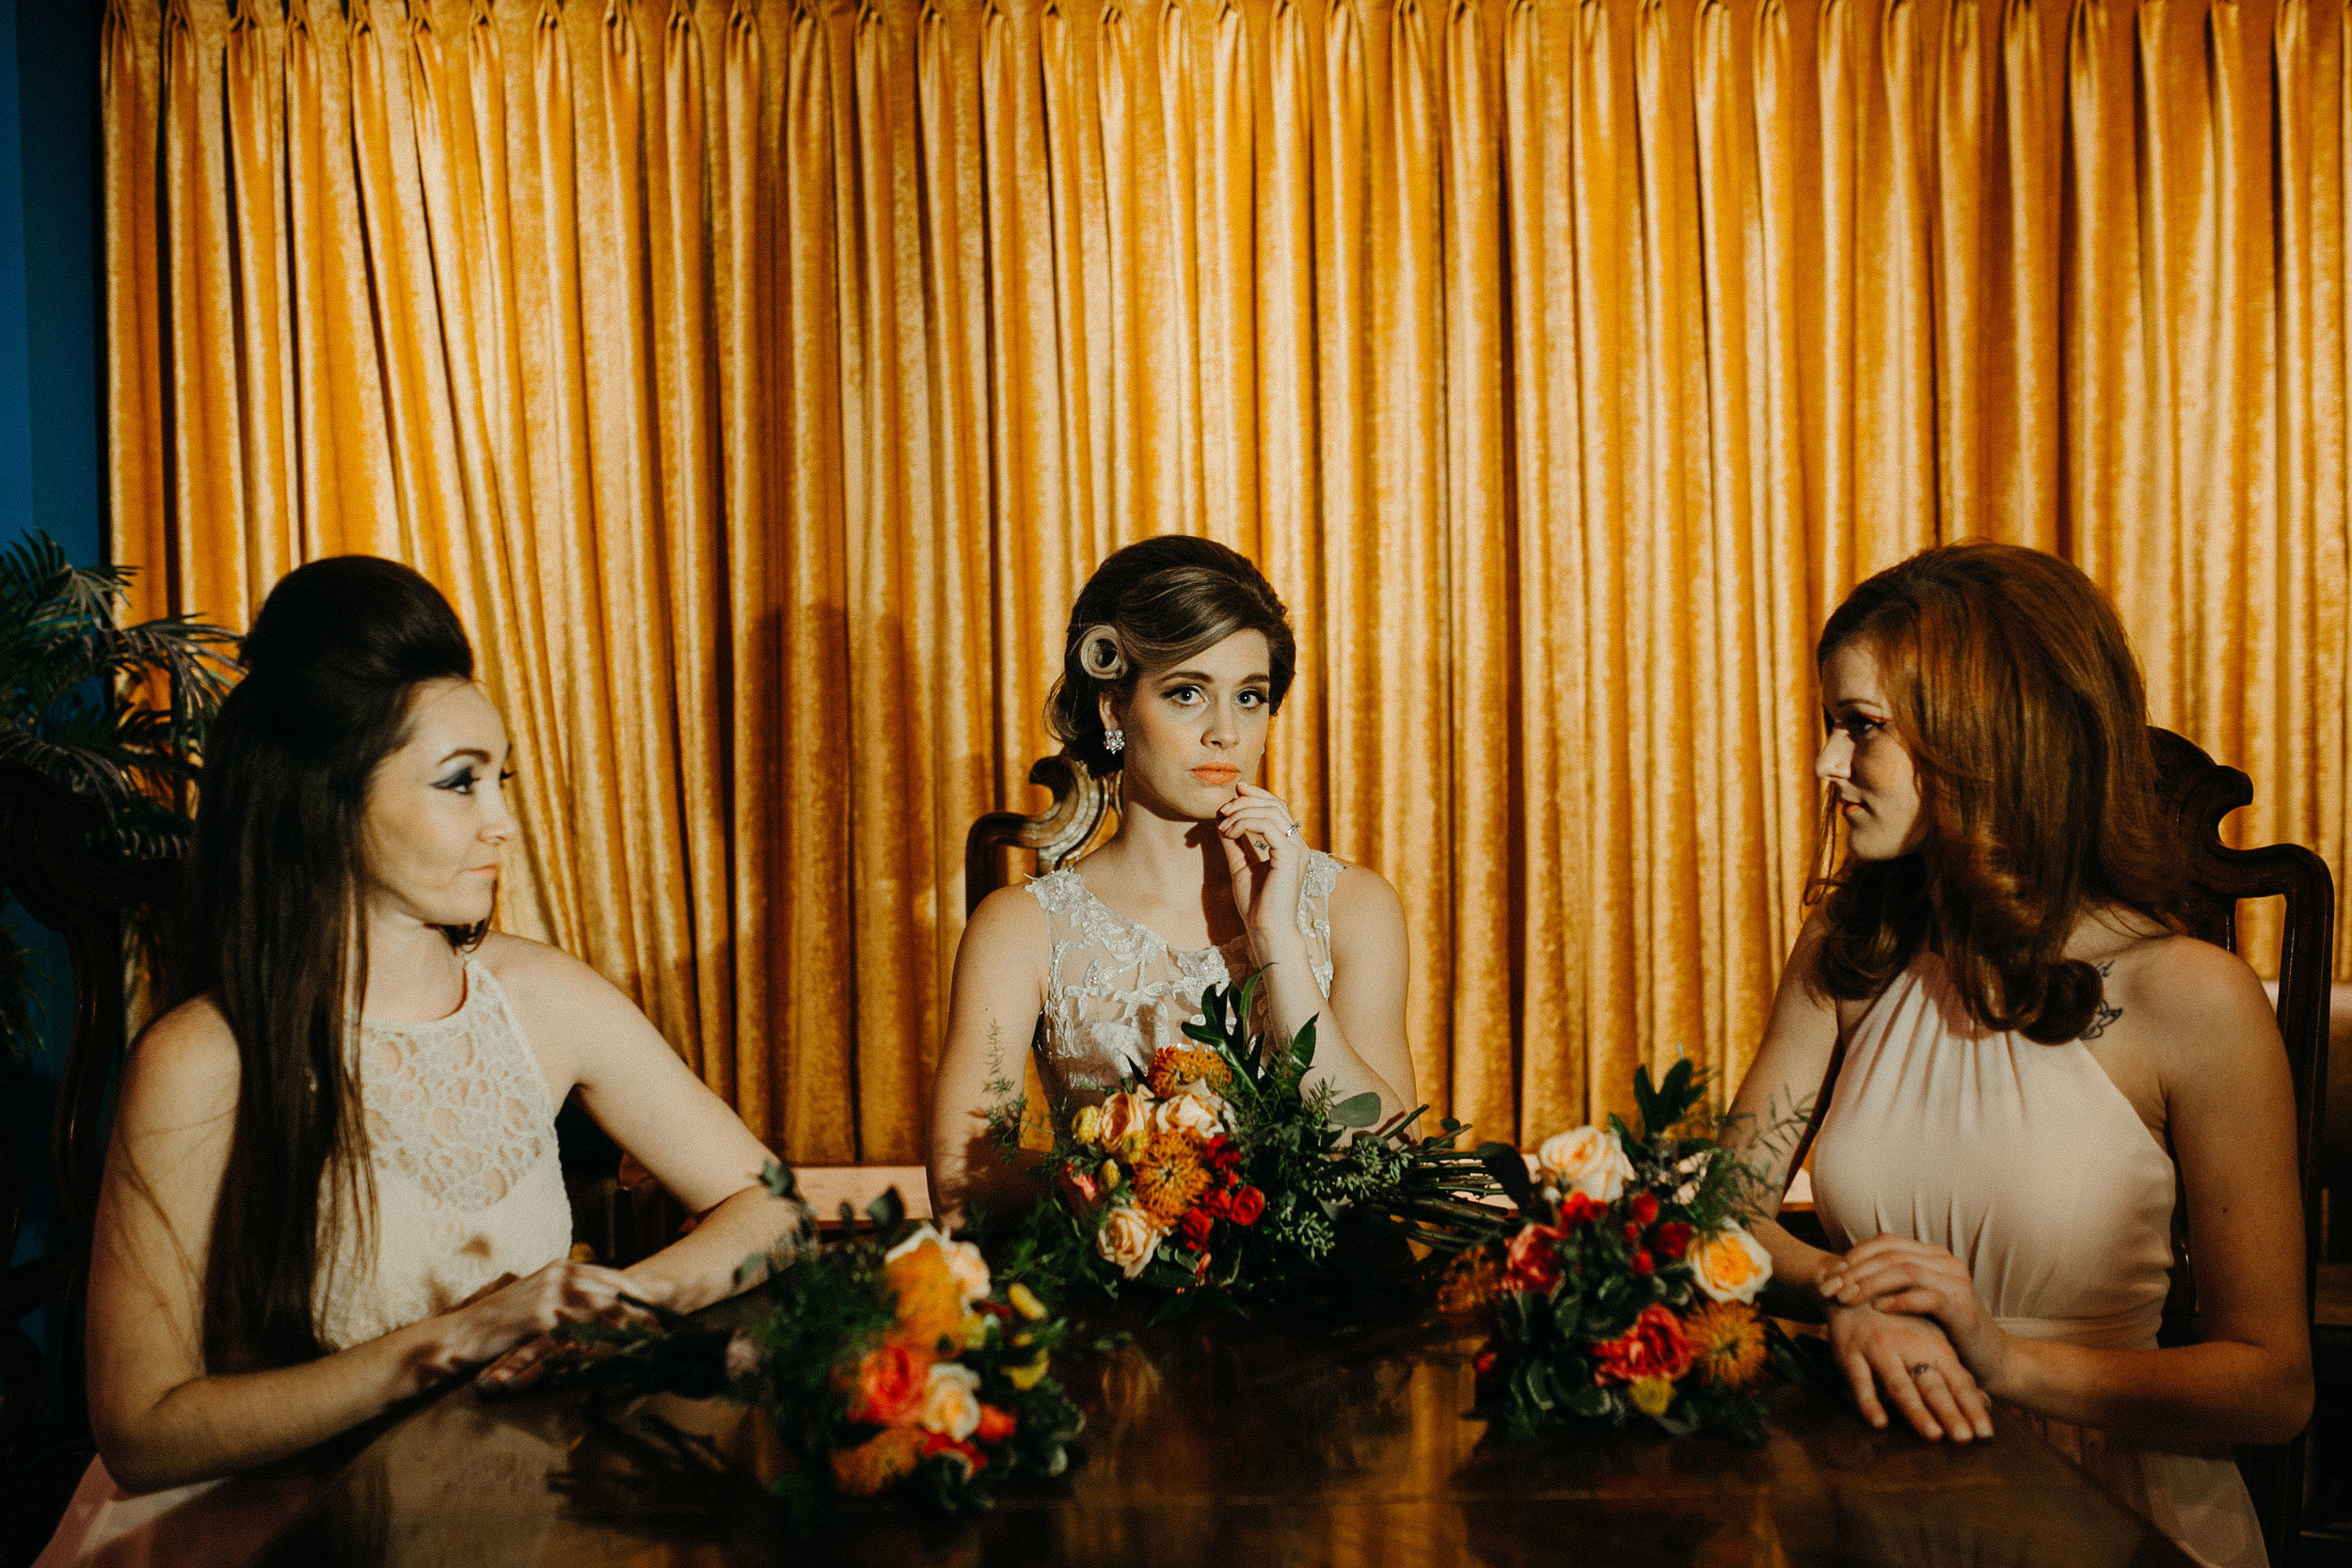 bridesmaids and bride sit at a large table in fancy des moines bar and rest their floral bouquets on the table in front of them, in colors of gold, red, and orange